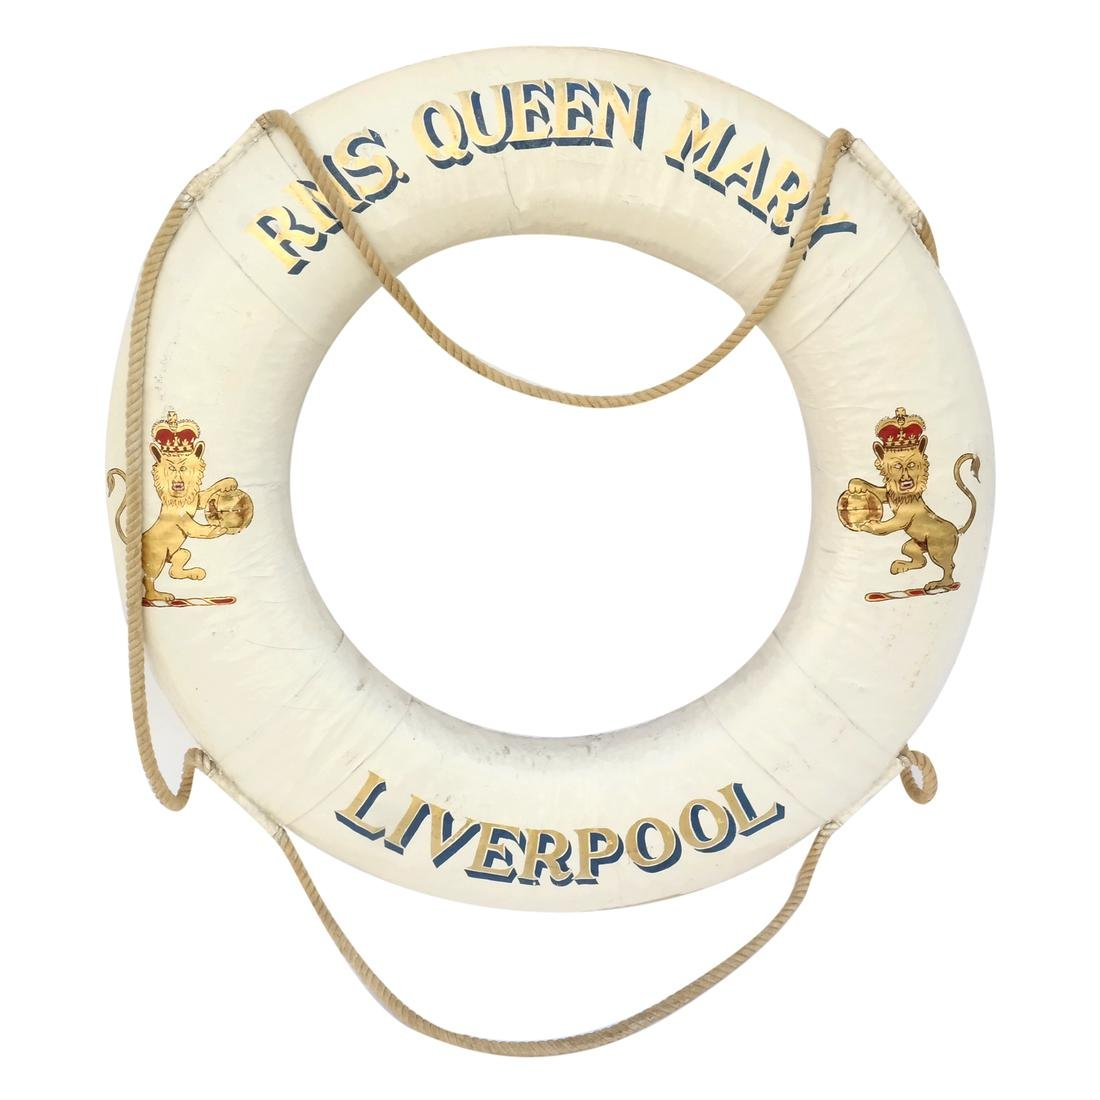 R.M.S. Queen Mary Original Ceremonial Life Ring